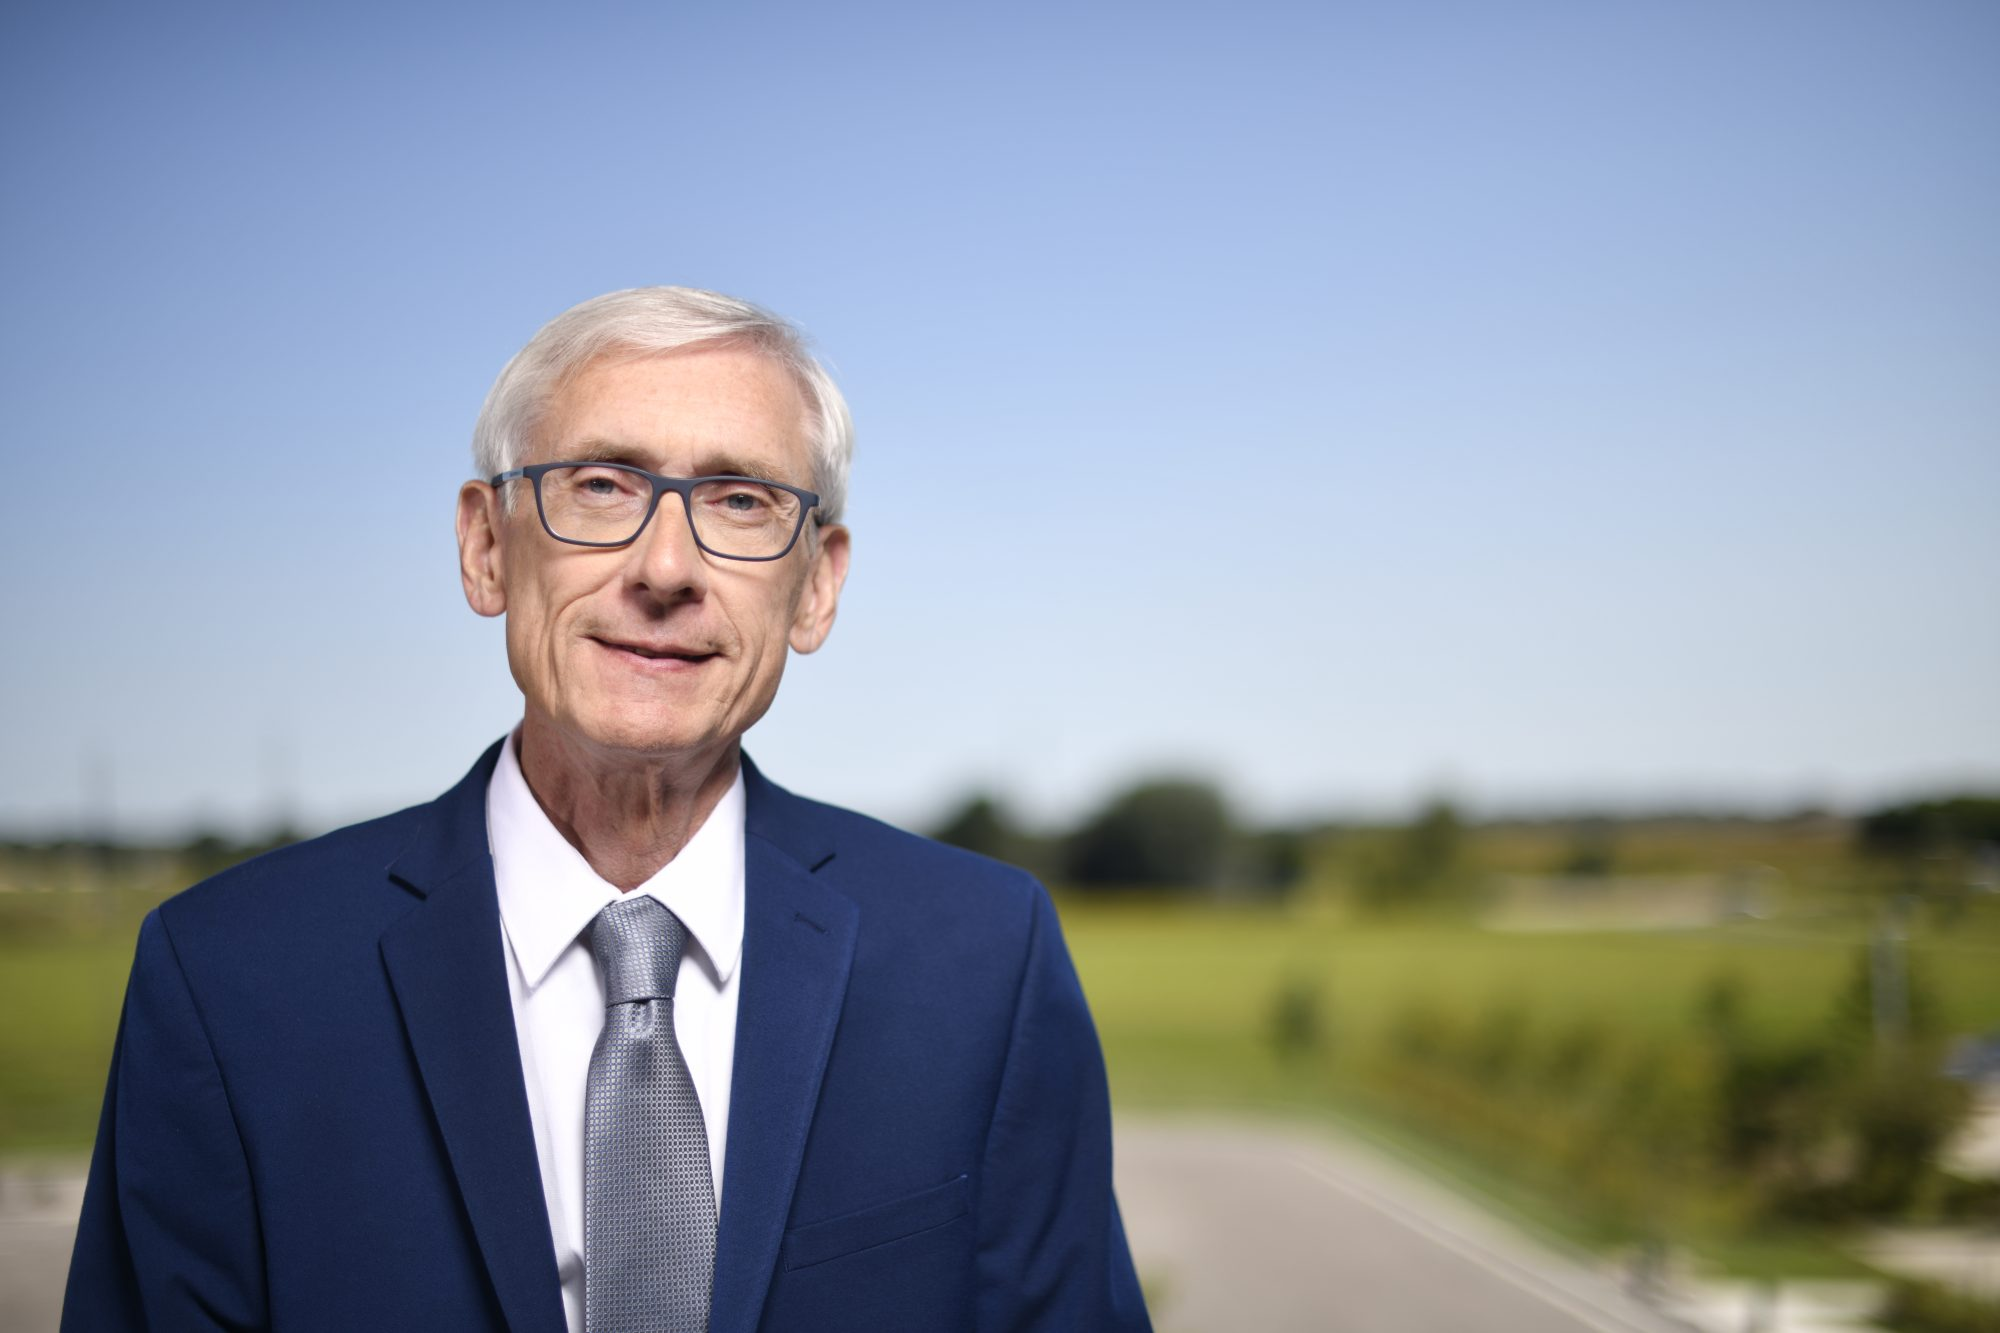 Gov. Evers, DHS Announce 1 Million Wisconsinites Have Received at Least One Dose of the COVID-19 Vaccine